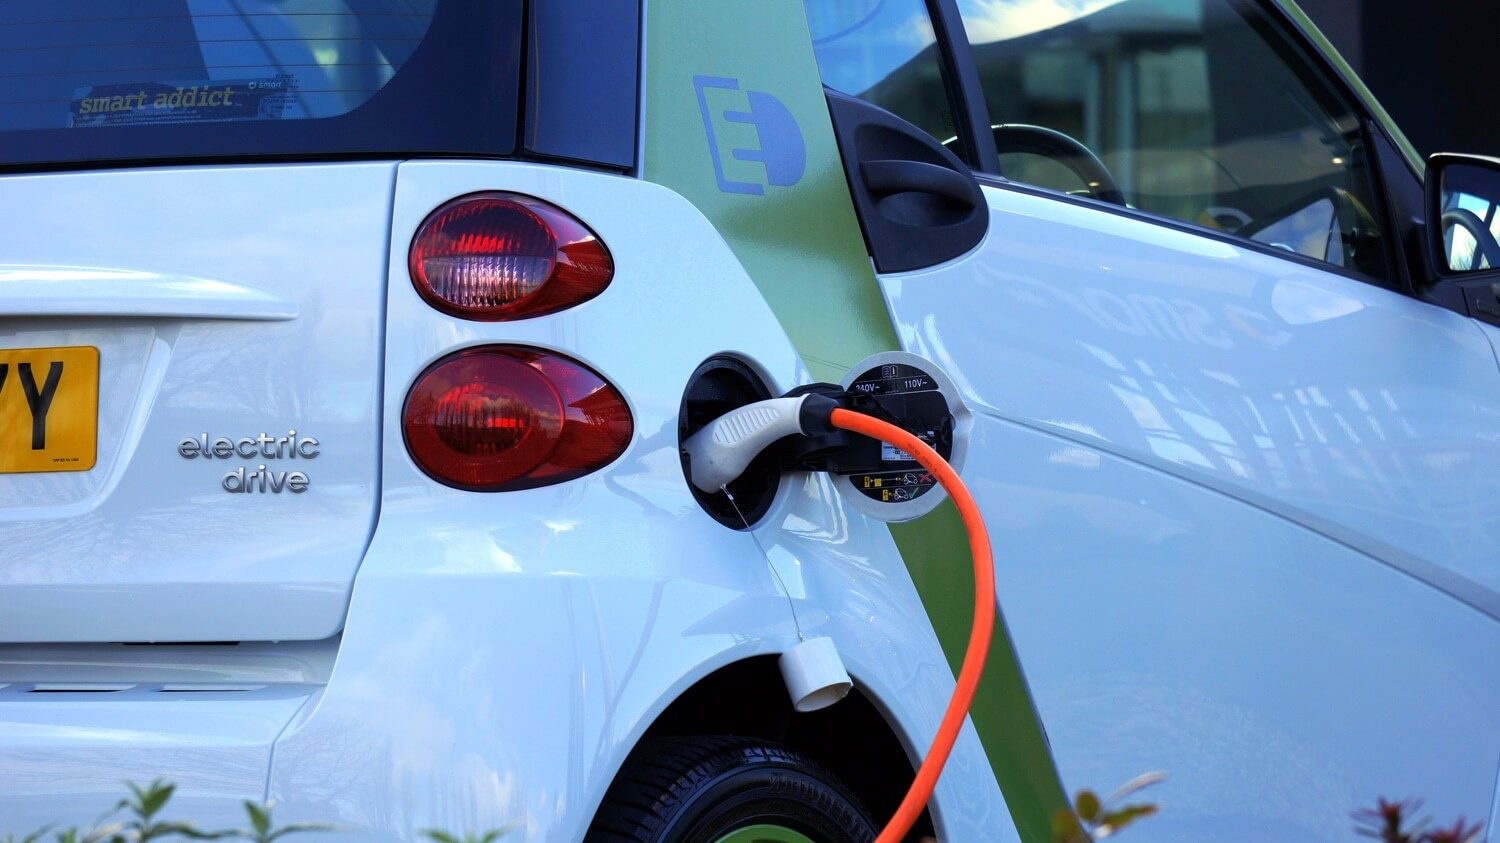 Free Electric Car Chargers Offered by Retailers – How to Deal with the Additional Energy Costs